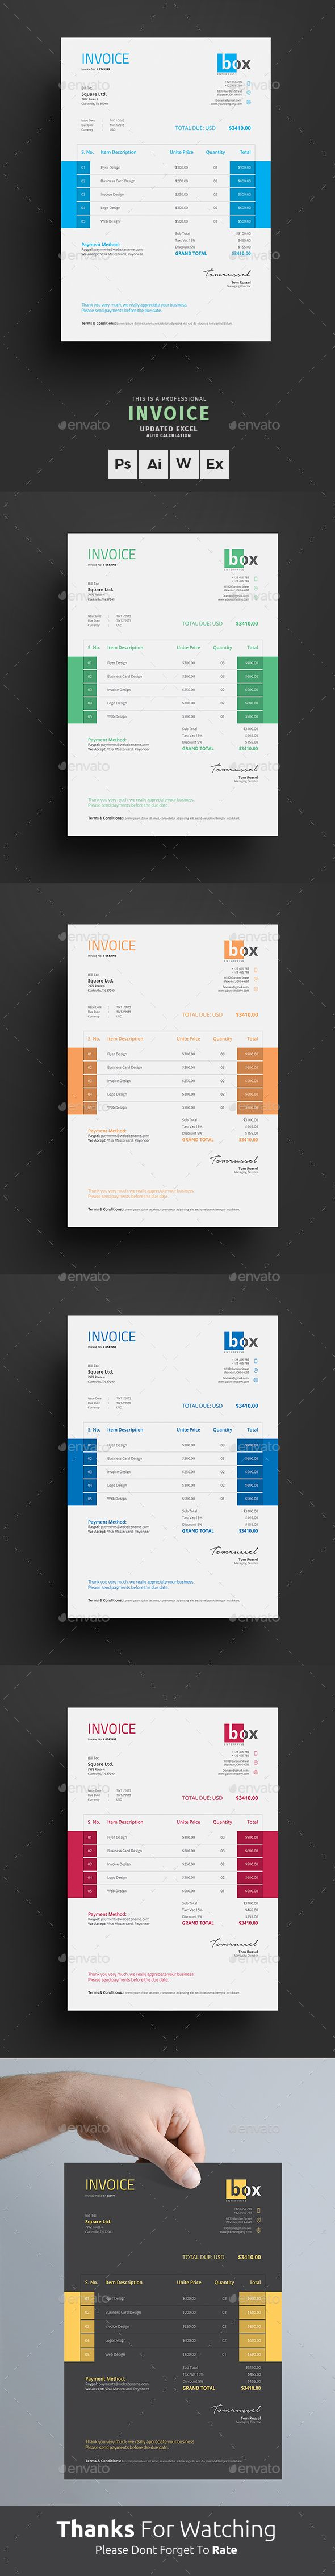 Clean Invoice by themedevisers Invoice Excel Template. Use this Clean Invoice for personal, corporate or company billing purpose. This Simple Invoice will help